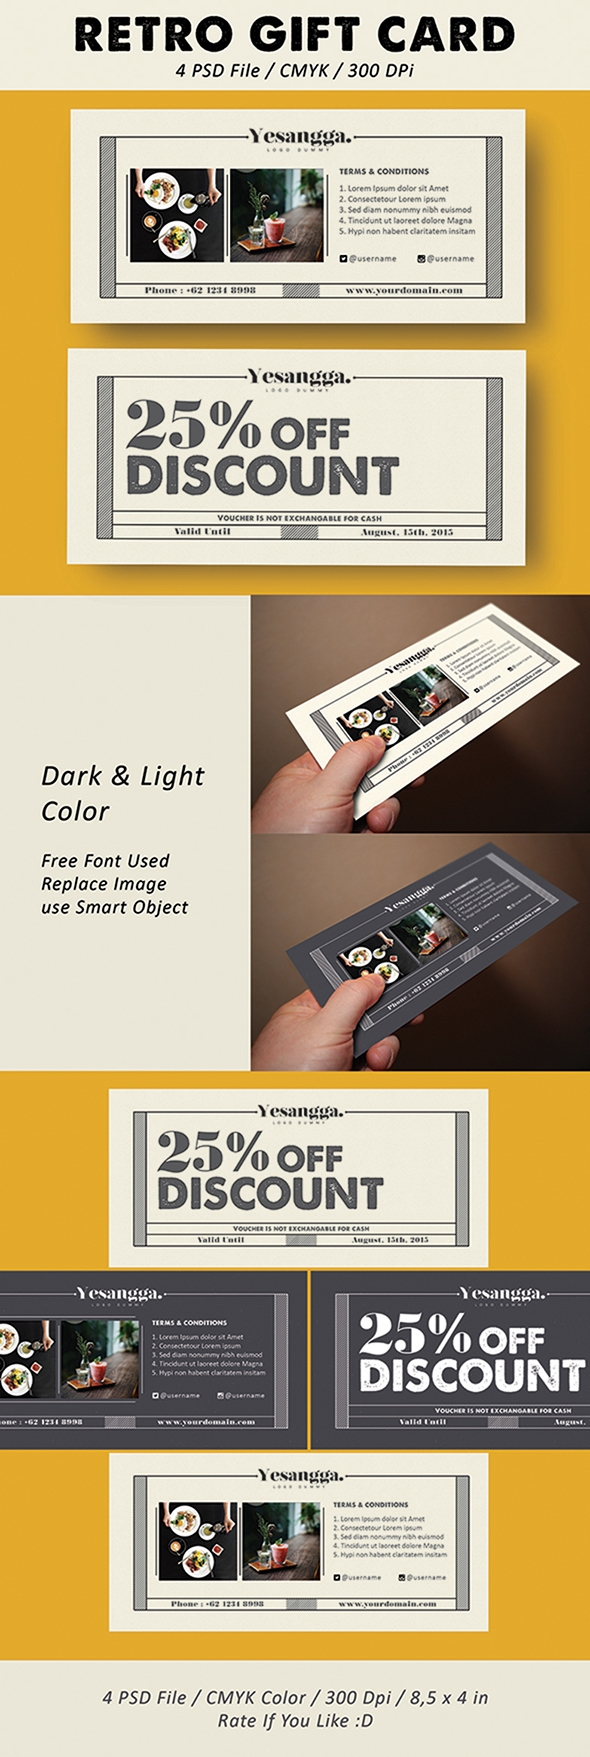 Free retro gift card template business cards pinterest gift free retro gift card template yelopaper Image collections